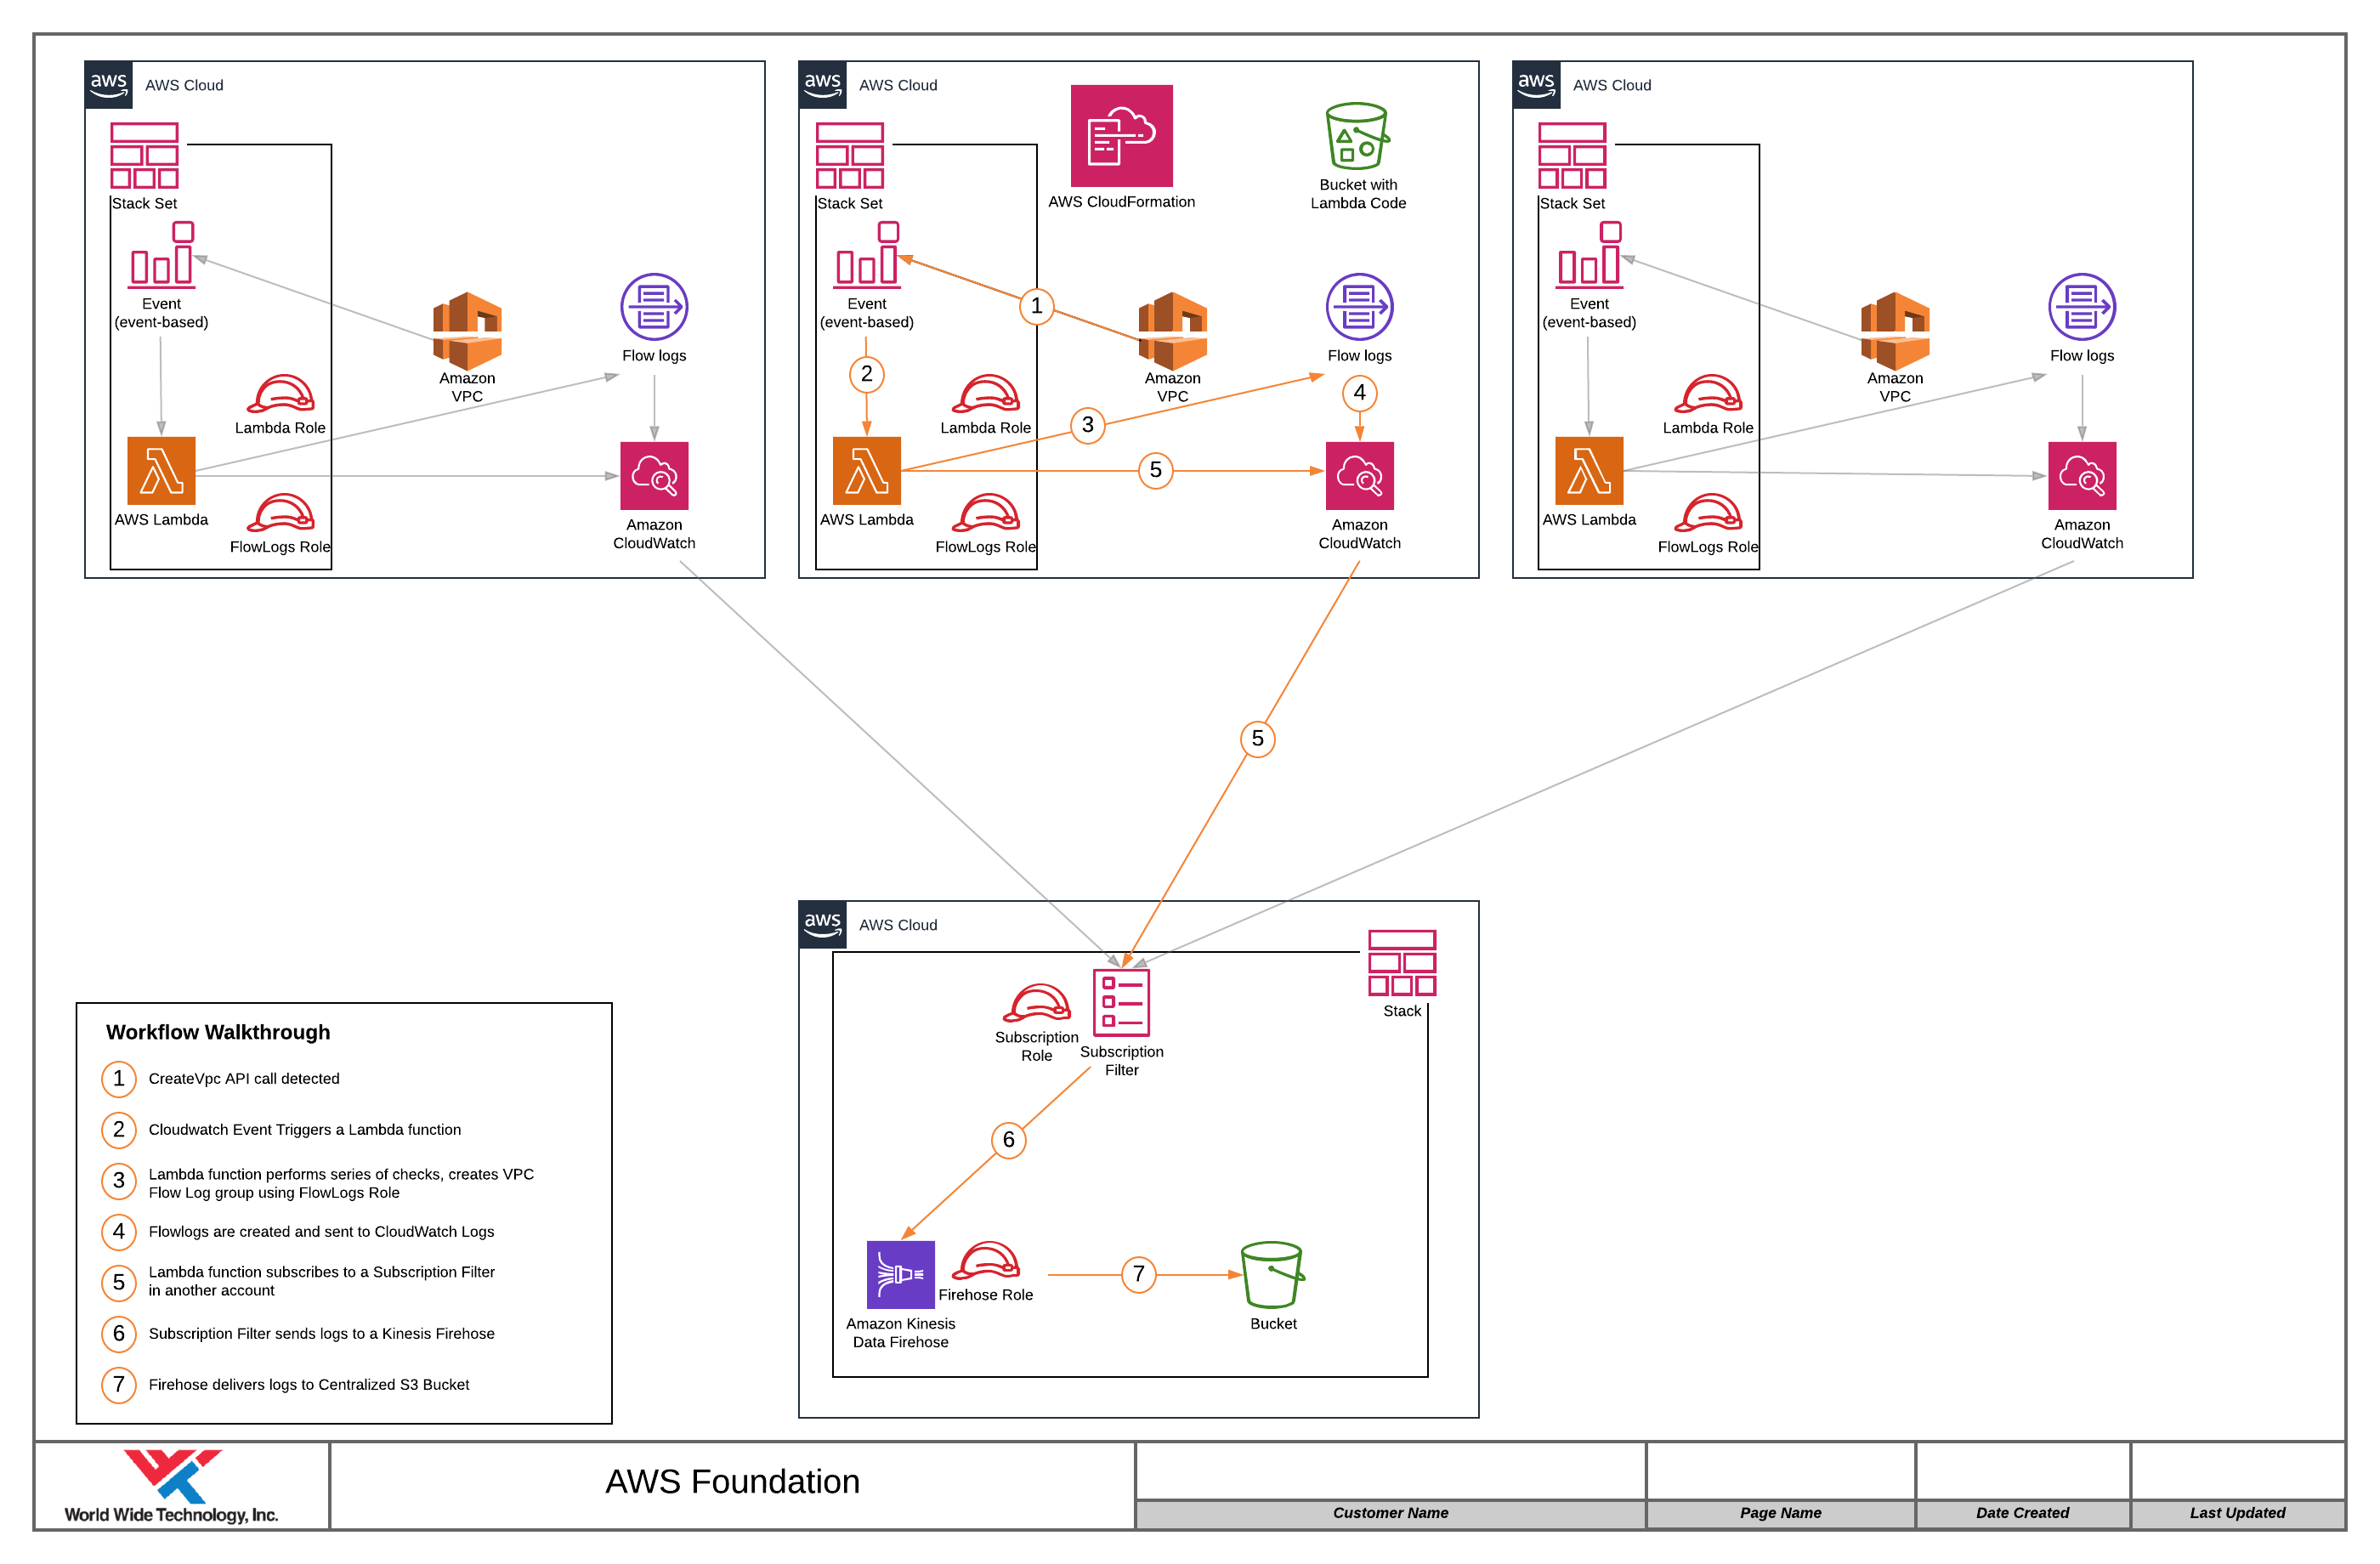 Automated VPC flow log and Kinesis delivery